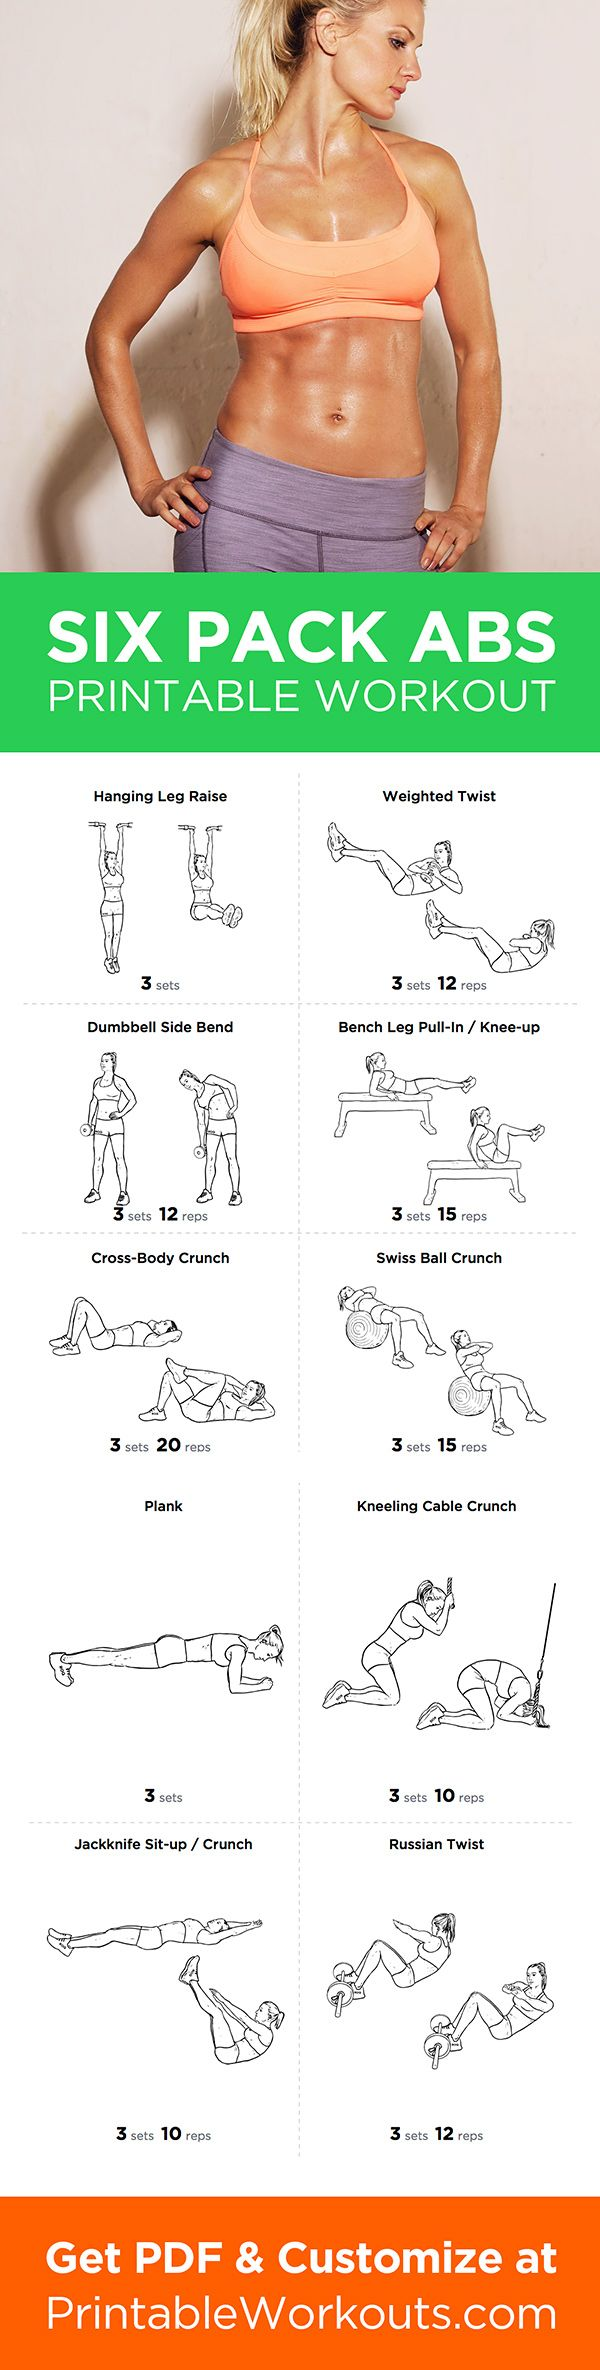 Printable Workout to Customize and Print: Six Pack Abs Abdominal Workout Routine for Men and Women